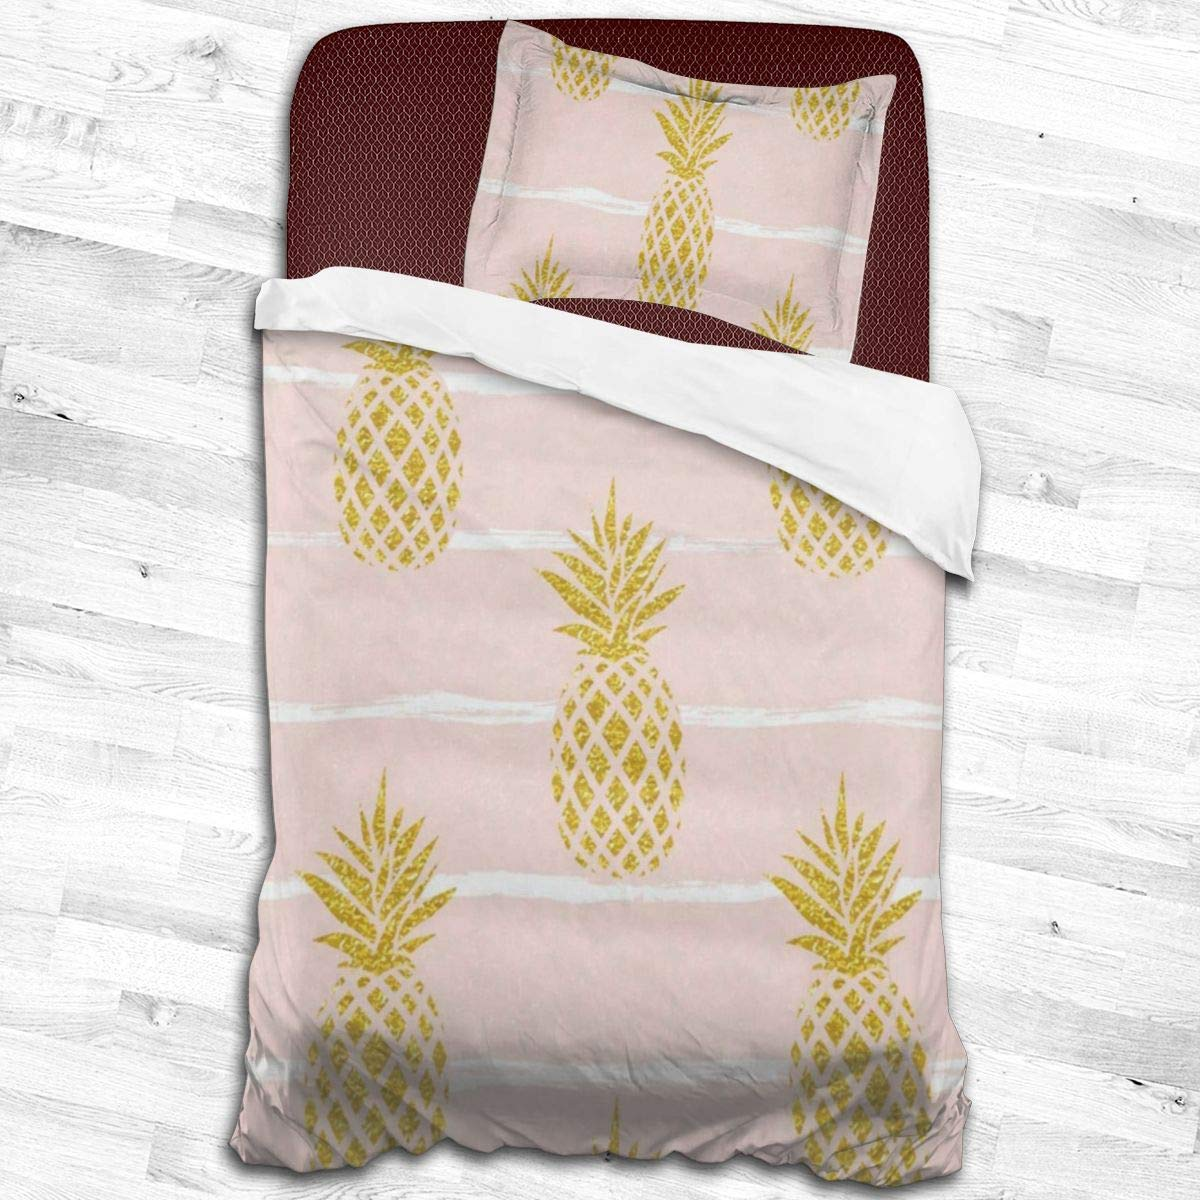 """Kids Duvet Cover Set Summer Gold Pineapple Quilt Covers Decorative 2 Piece Bedding Set with 1 Pillow Cases Microfiber Comforter Cover for Toddler Teen Boys Girls Children 55""""x83"""""""